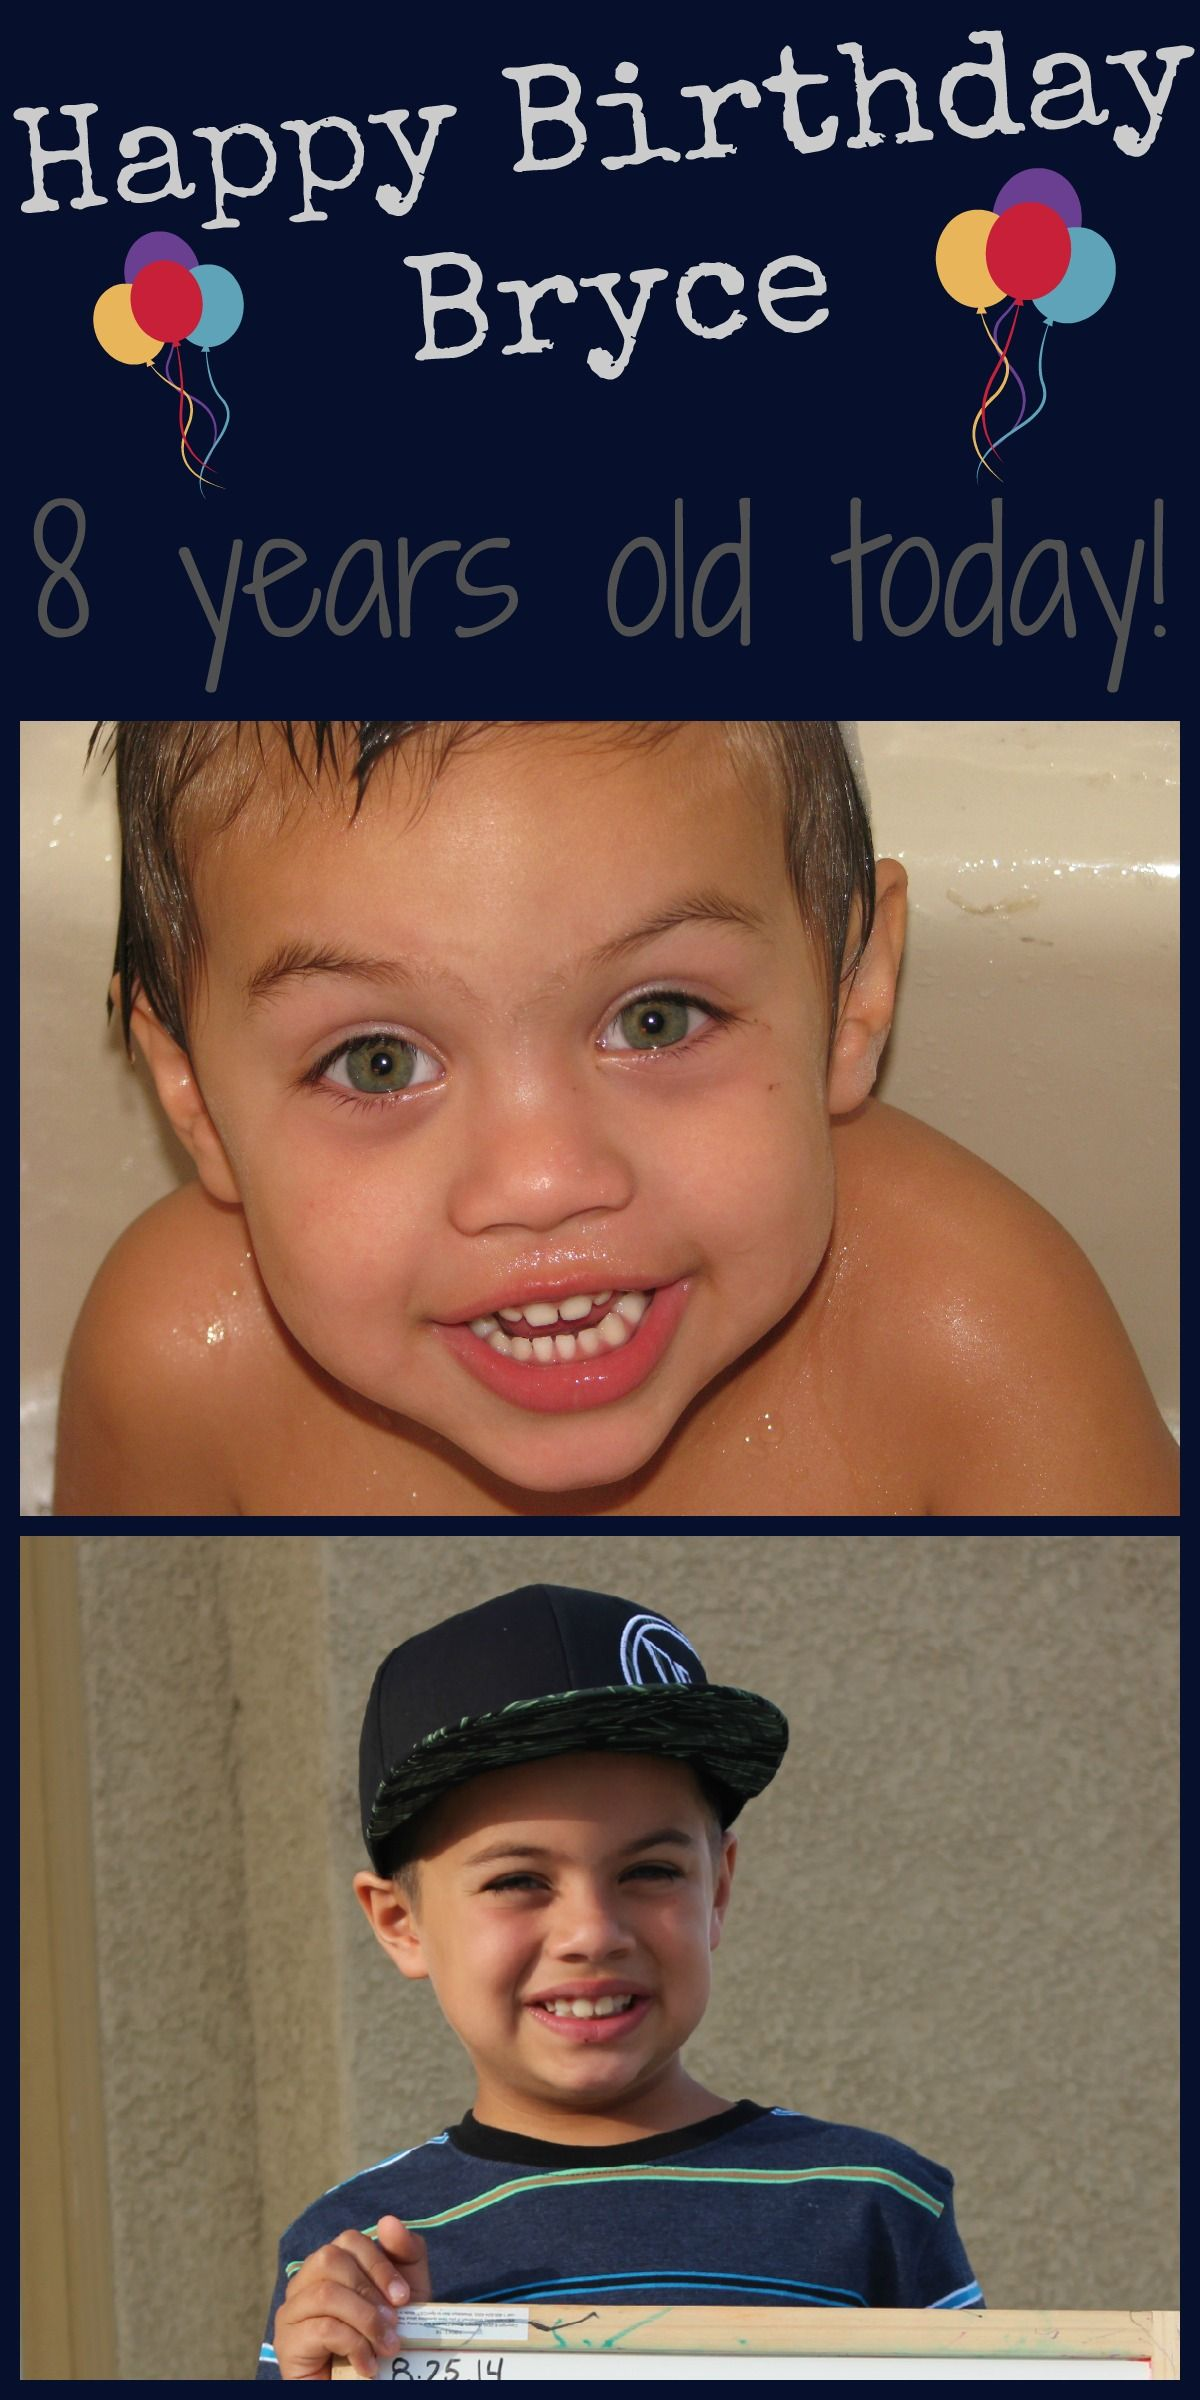 Check out and see some of my favorite pictures through the years! http://mehaffeymoments.blogspot.com/2014/08/brycie-turns-8-today.html #blogger   #momlife   #birthdayboy   #8yrsold   #mehaffeymoments   #celebratemotherhood